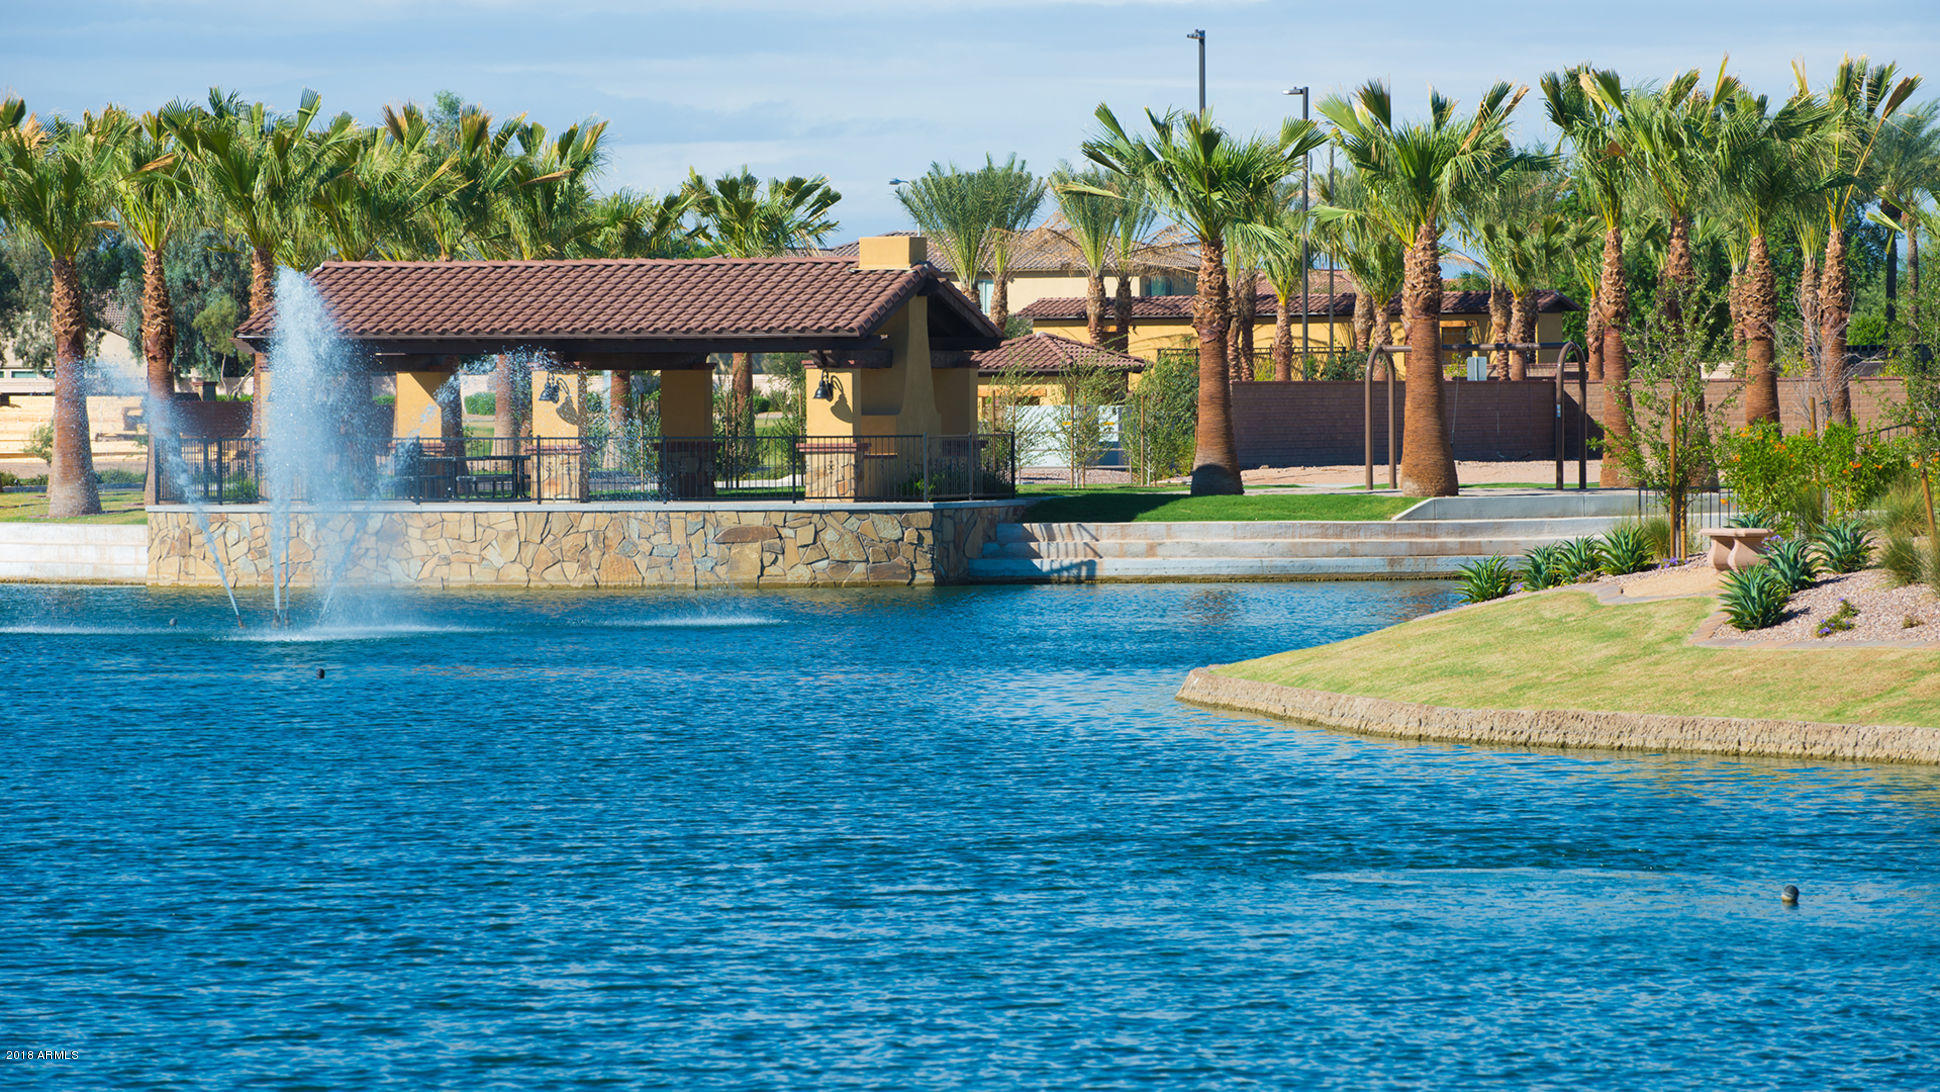 MLS 5791546 940 W YOSEMITE Drive, Chandler, AZ 85248 Community Pool